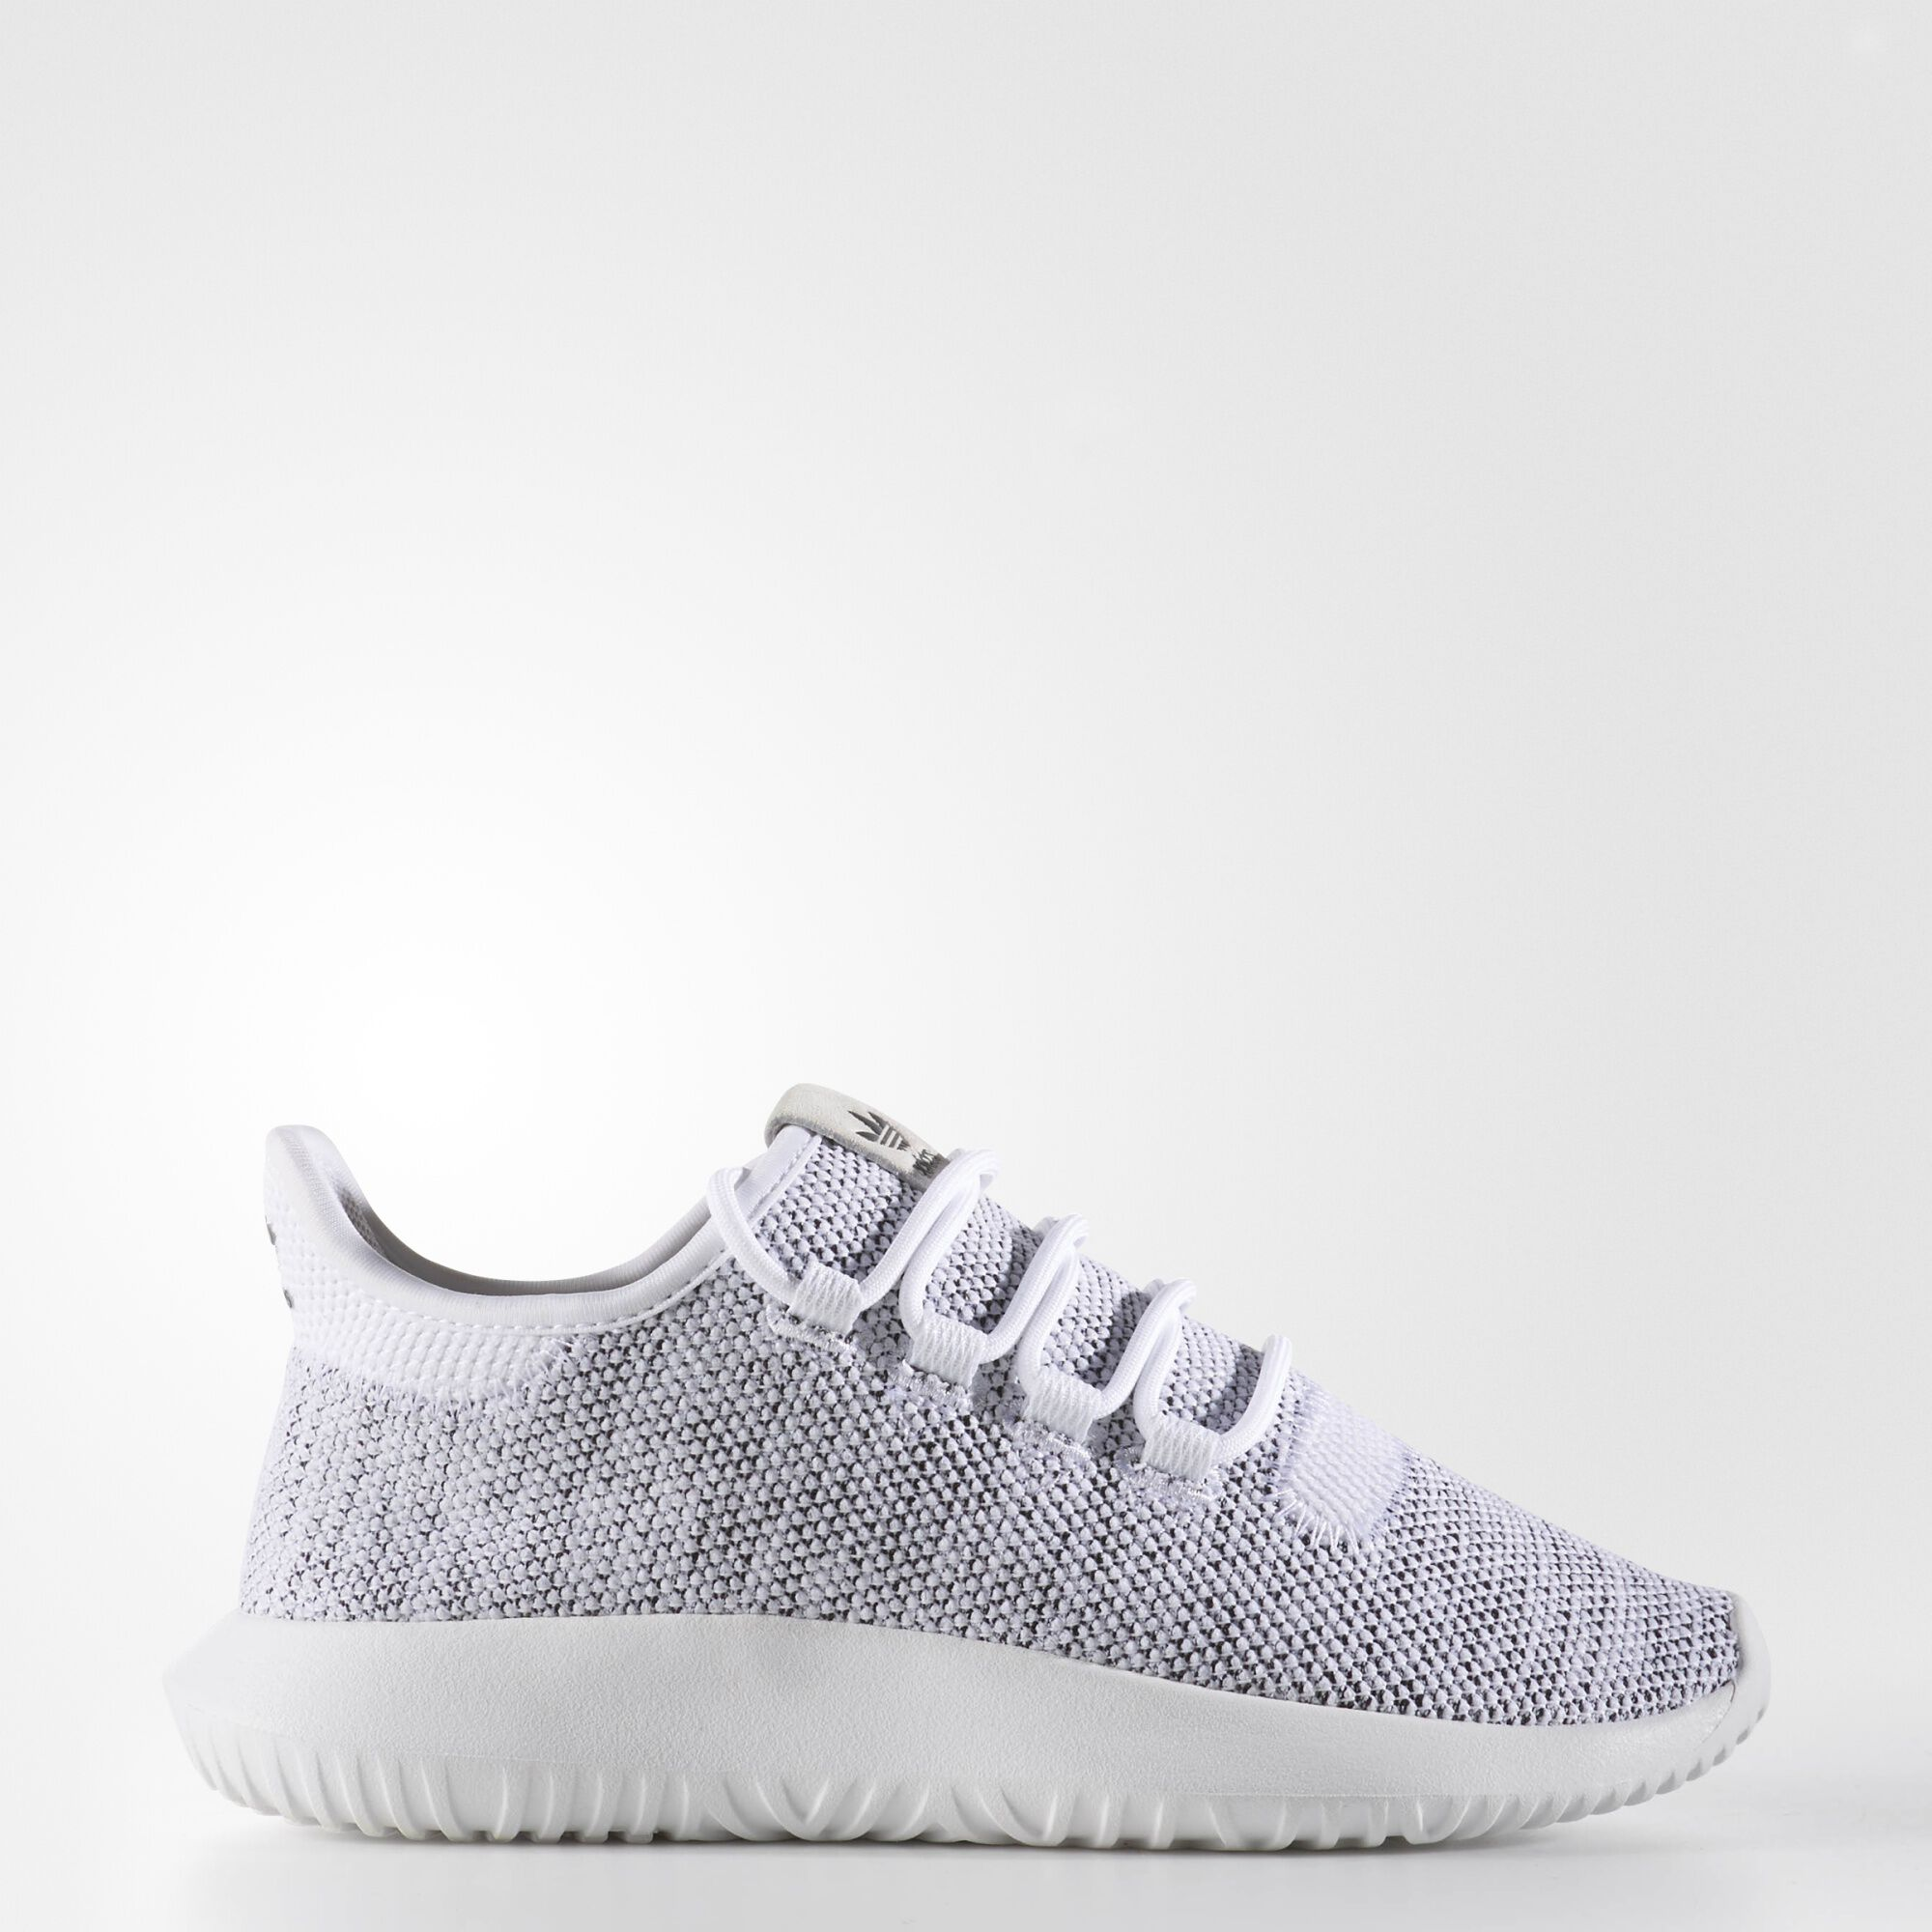 Adidas Tubular Viral Shoes Gray adidas Ireland